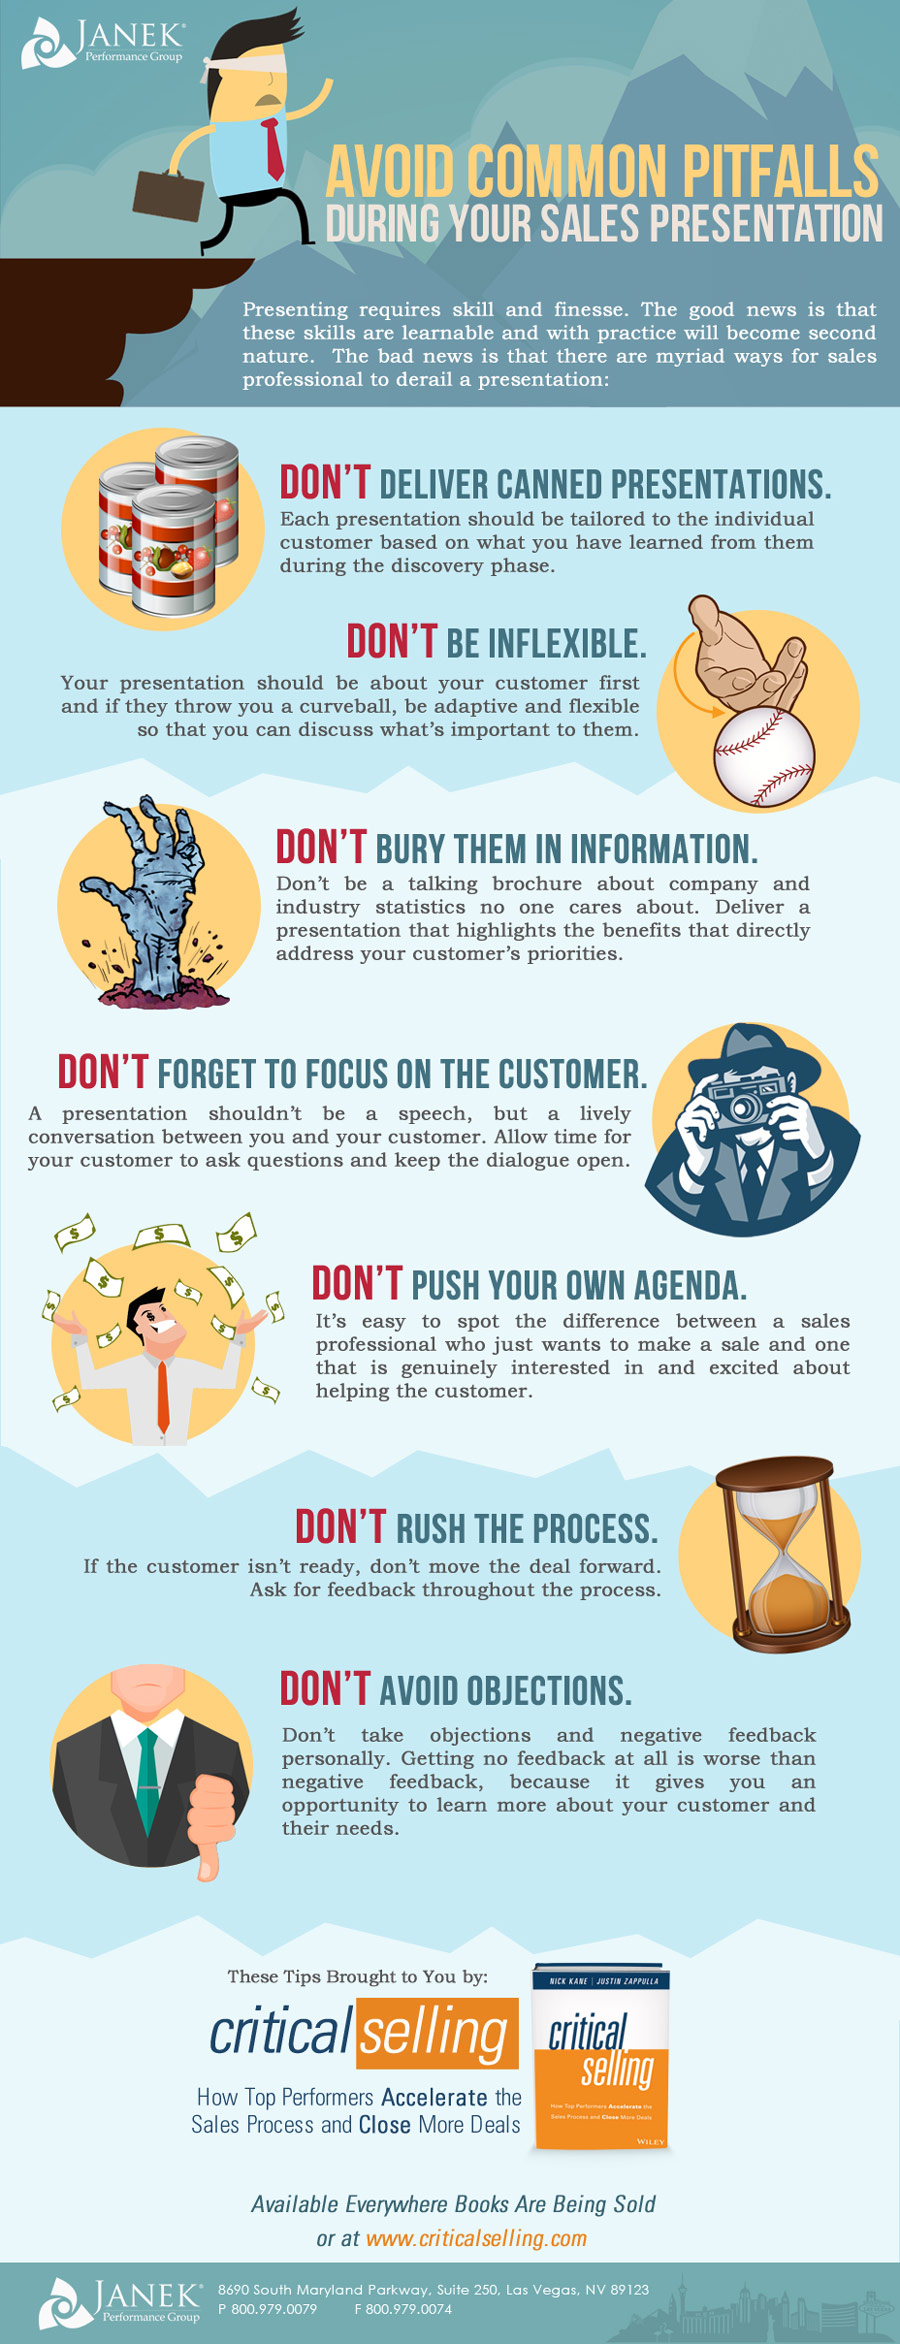 Avoid Common Pitfalls During Your Sales Presentation